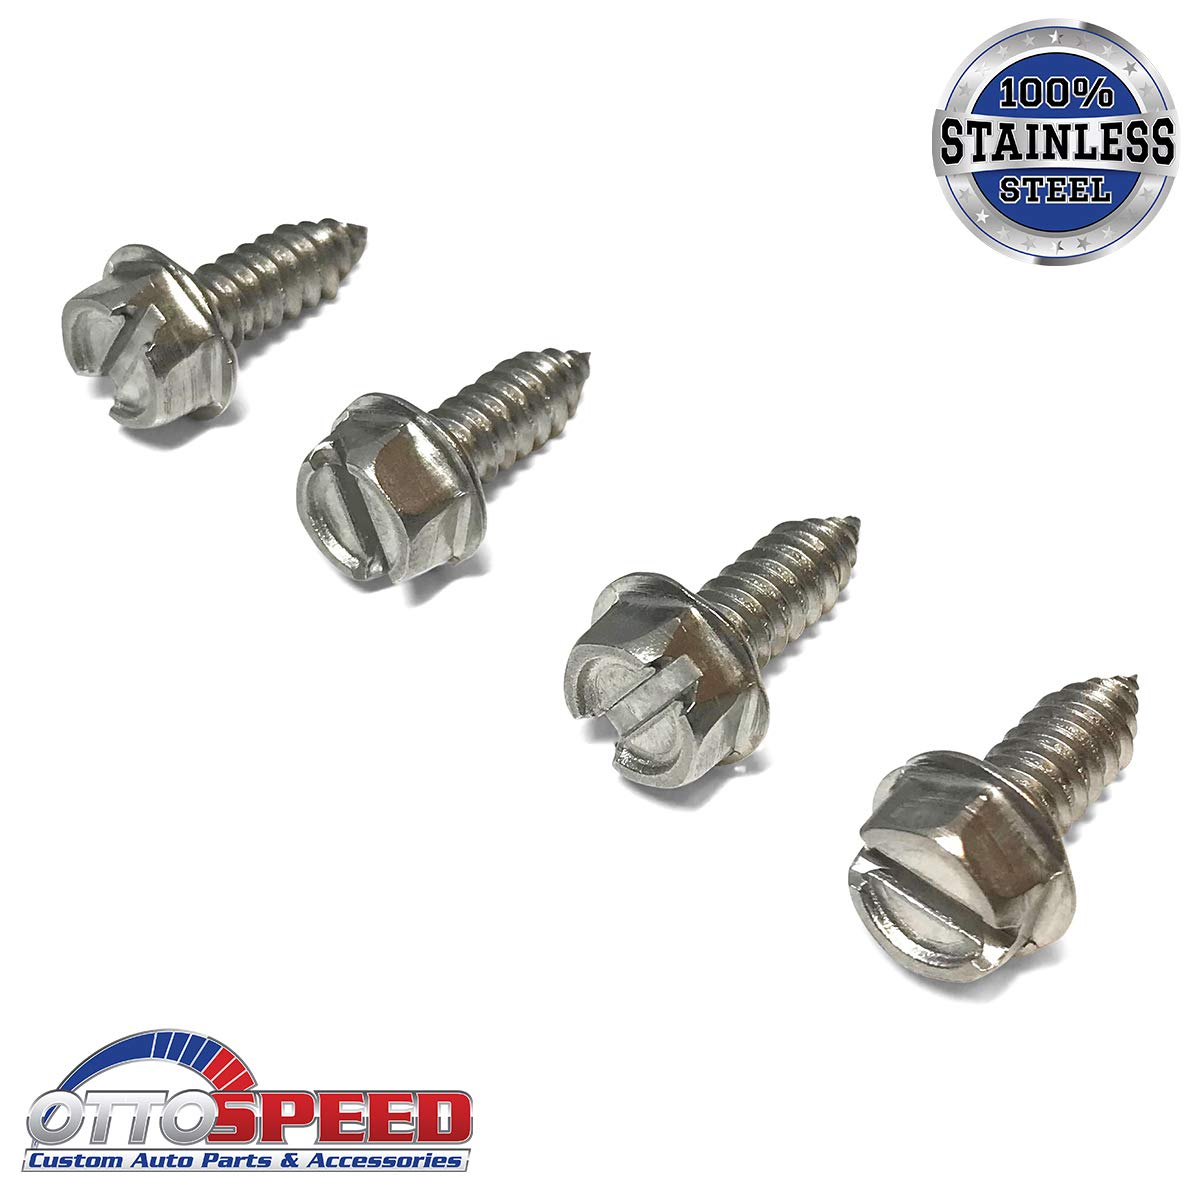 OttoSpeed Stainless License Plate Screws Stainless Steel OE Style Fastener Kit with Nylon Inserts for Fastening License Plates Frames /& Covers